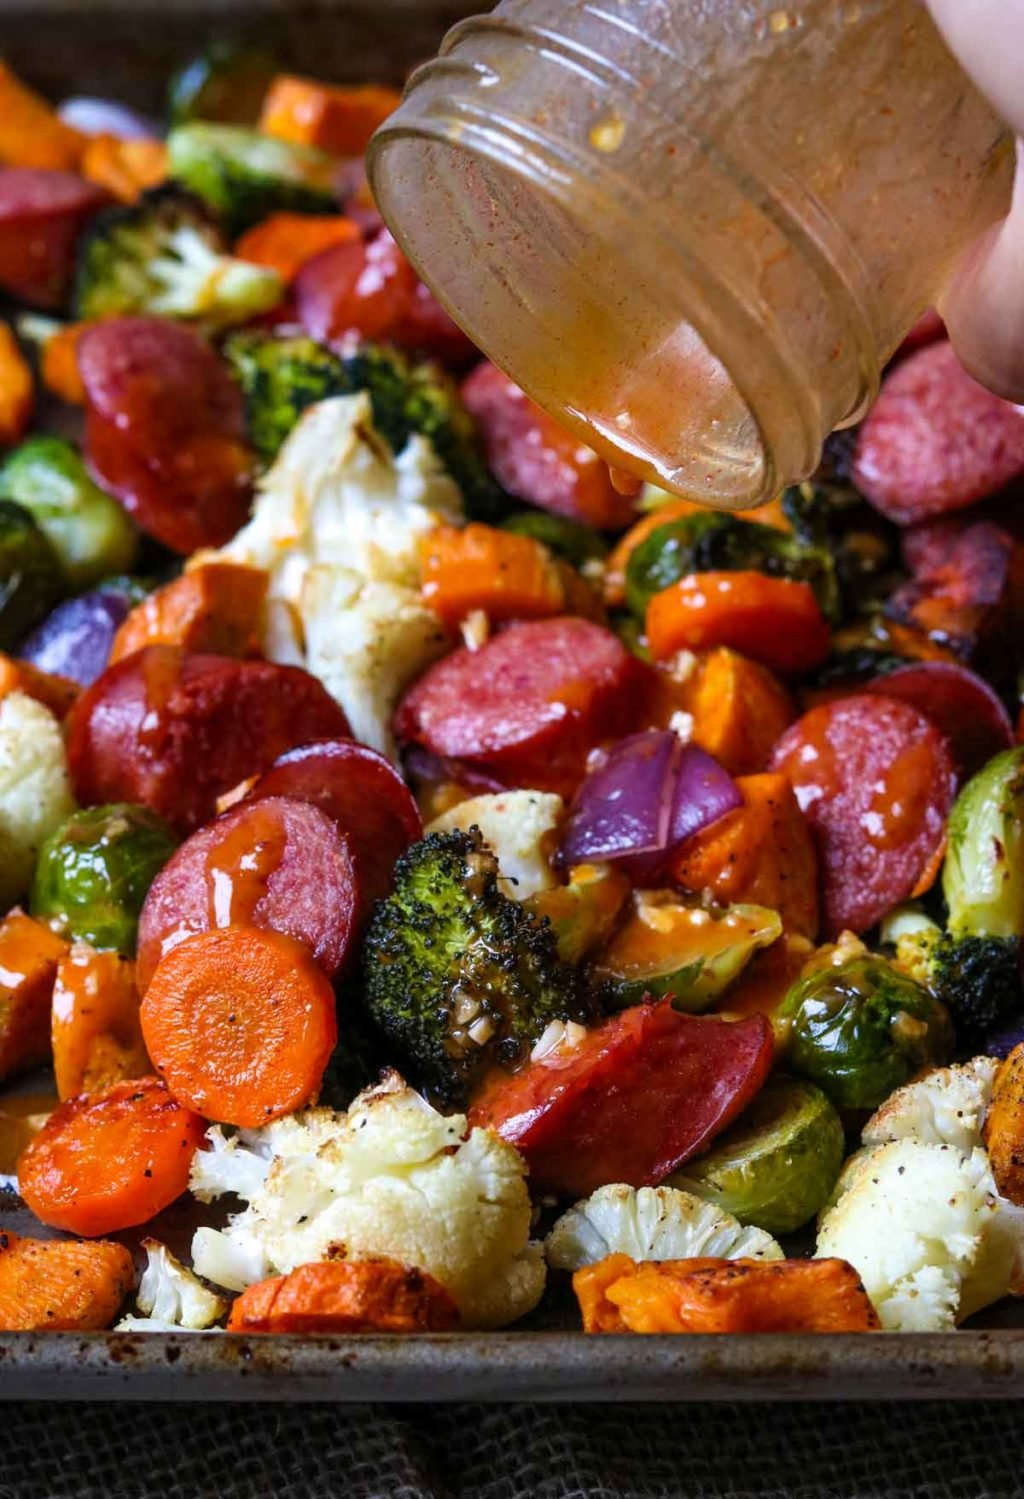 Smoked Sausage Sheet Pan Dinner with Veggies, and smoked paprika vinaigrette drizzled over top